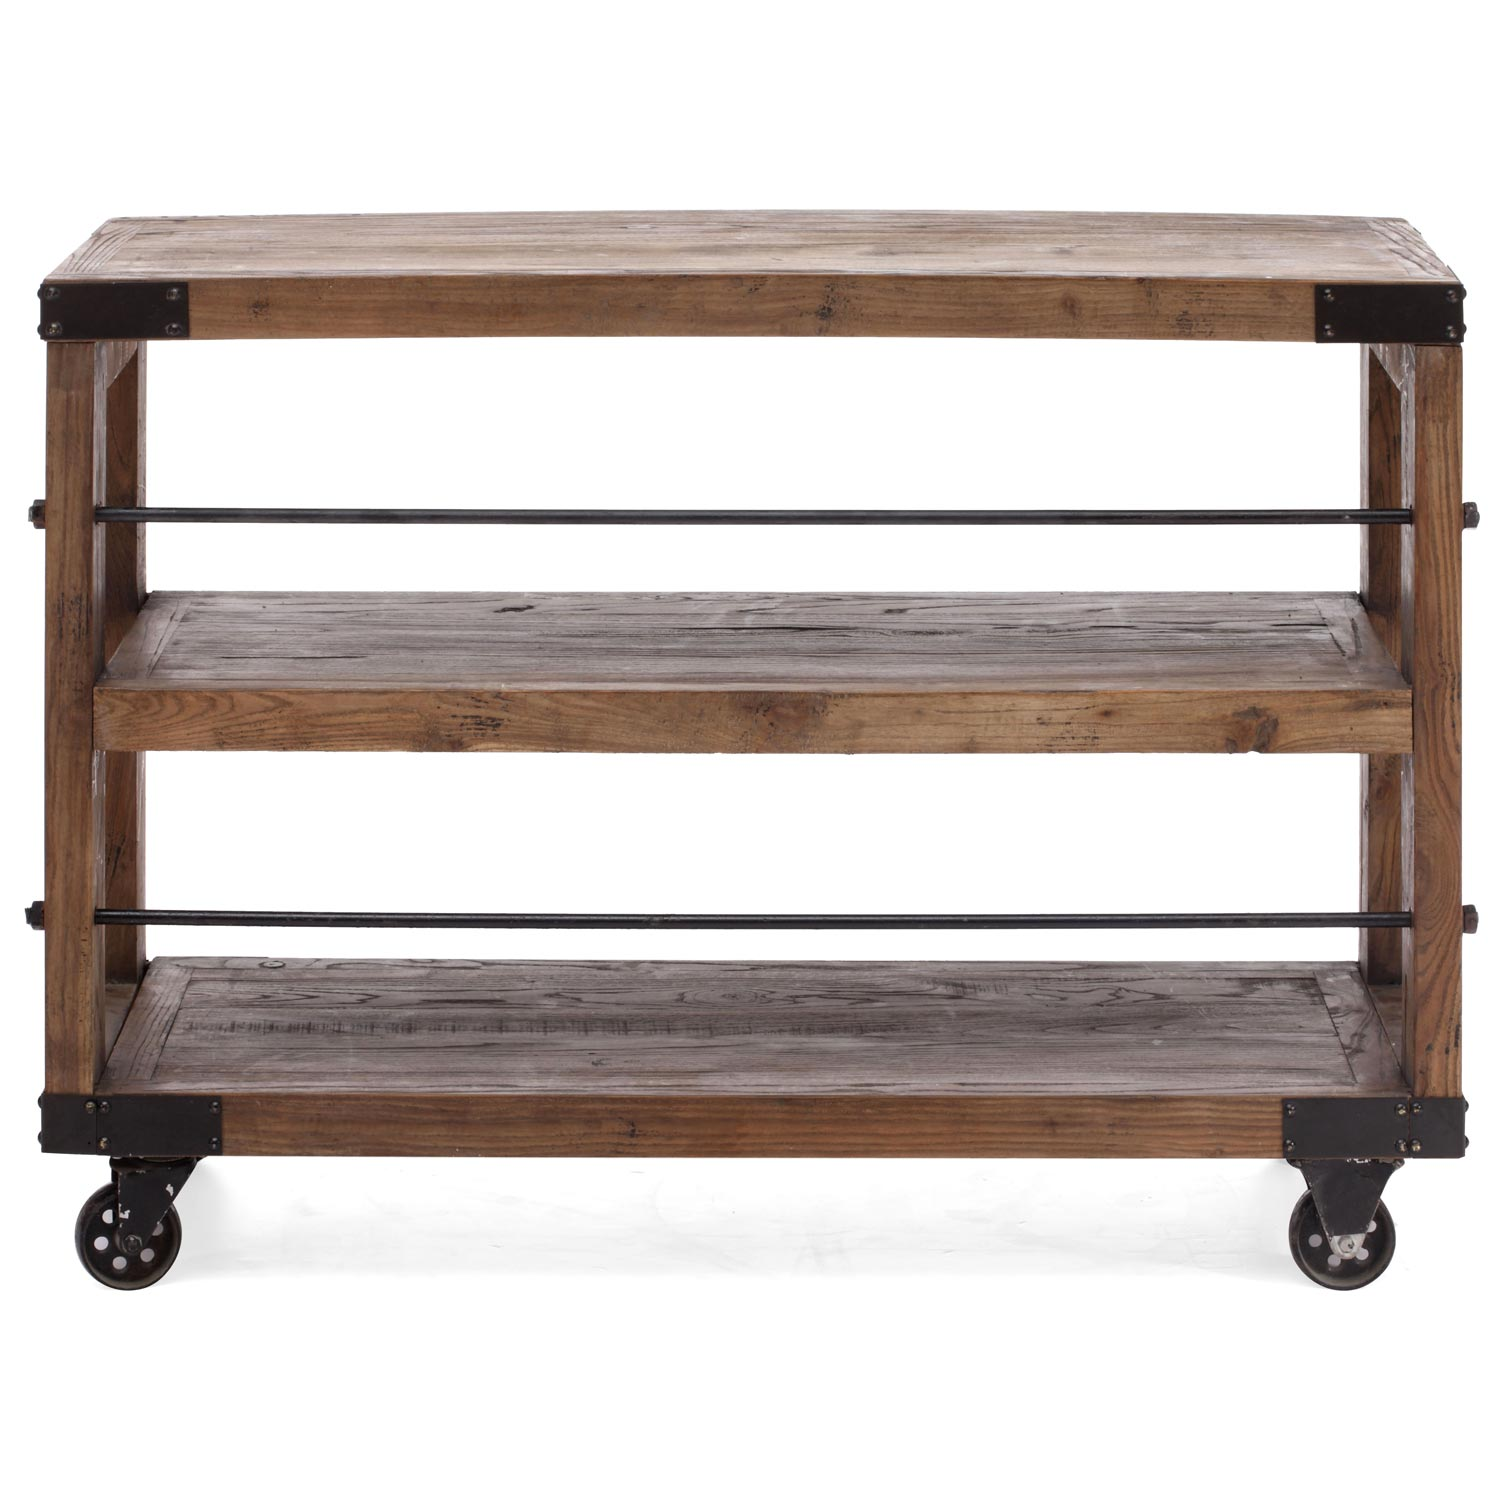 Fort Mason Shelf - Antique Metal Wheels, Distressed Natural Wood - ZM-98100